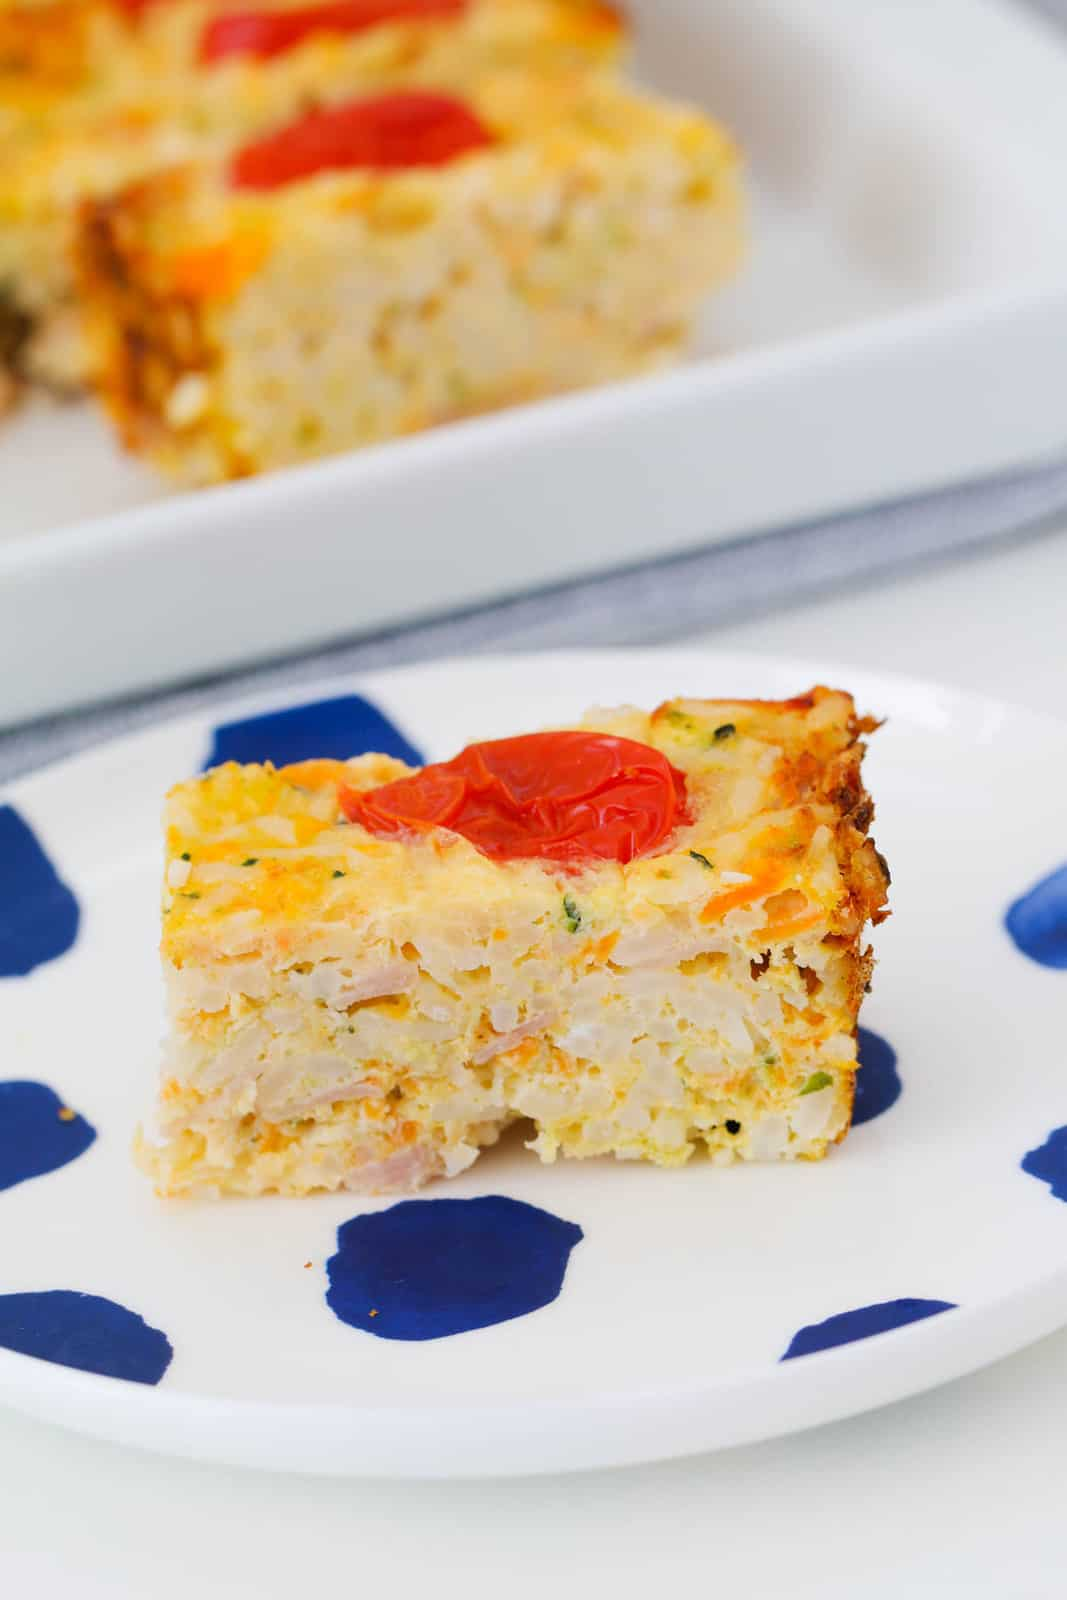 A piece of vegetable slice with zucchini, carrot, ham and rice on a blue and white plate.